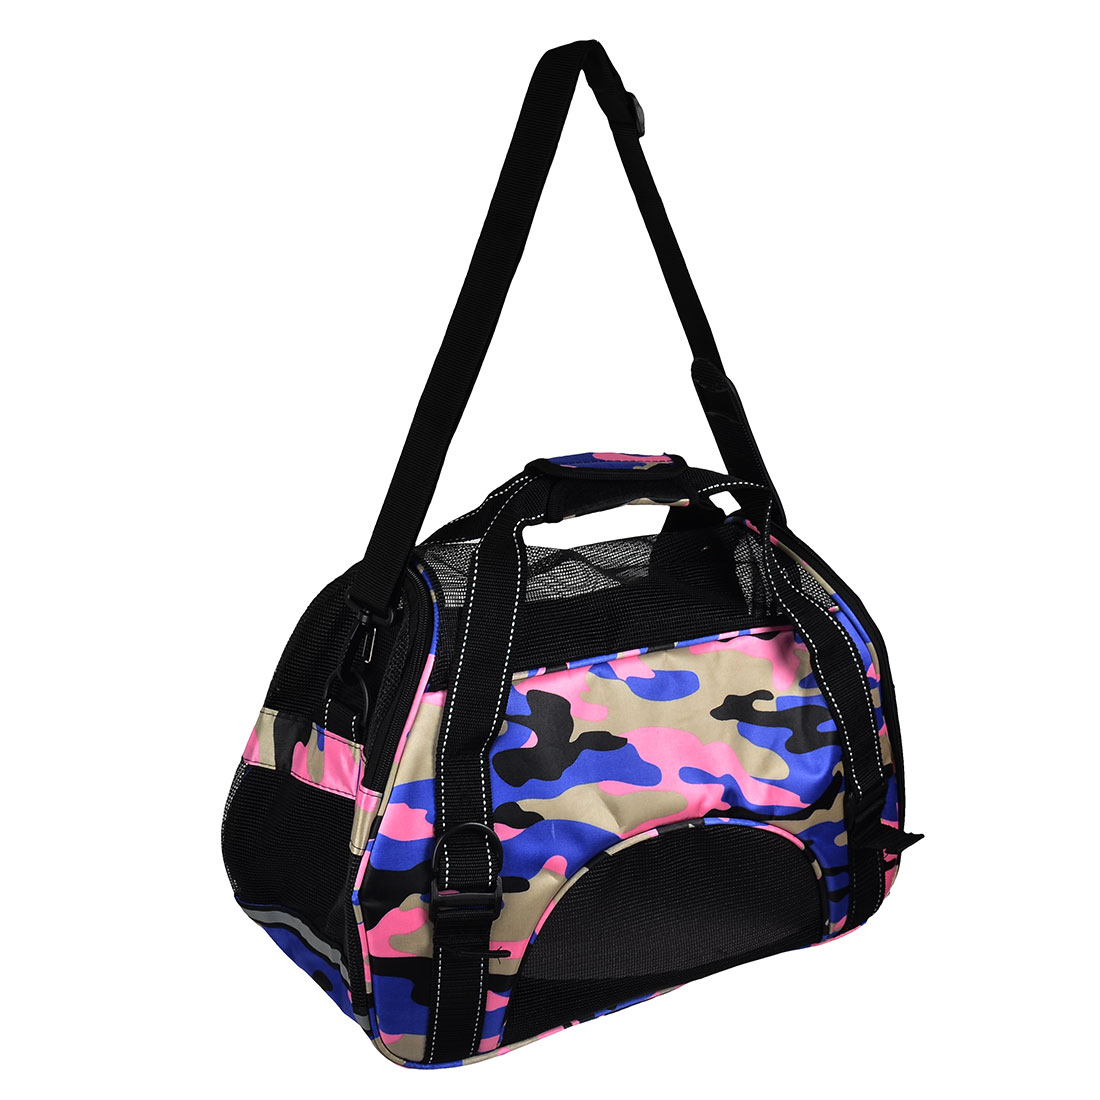 Outdoors Nylon Meshy Zipper Closure Pet Carrier Dog Crate Totes Bag Camouflage A